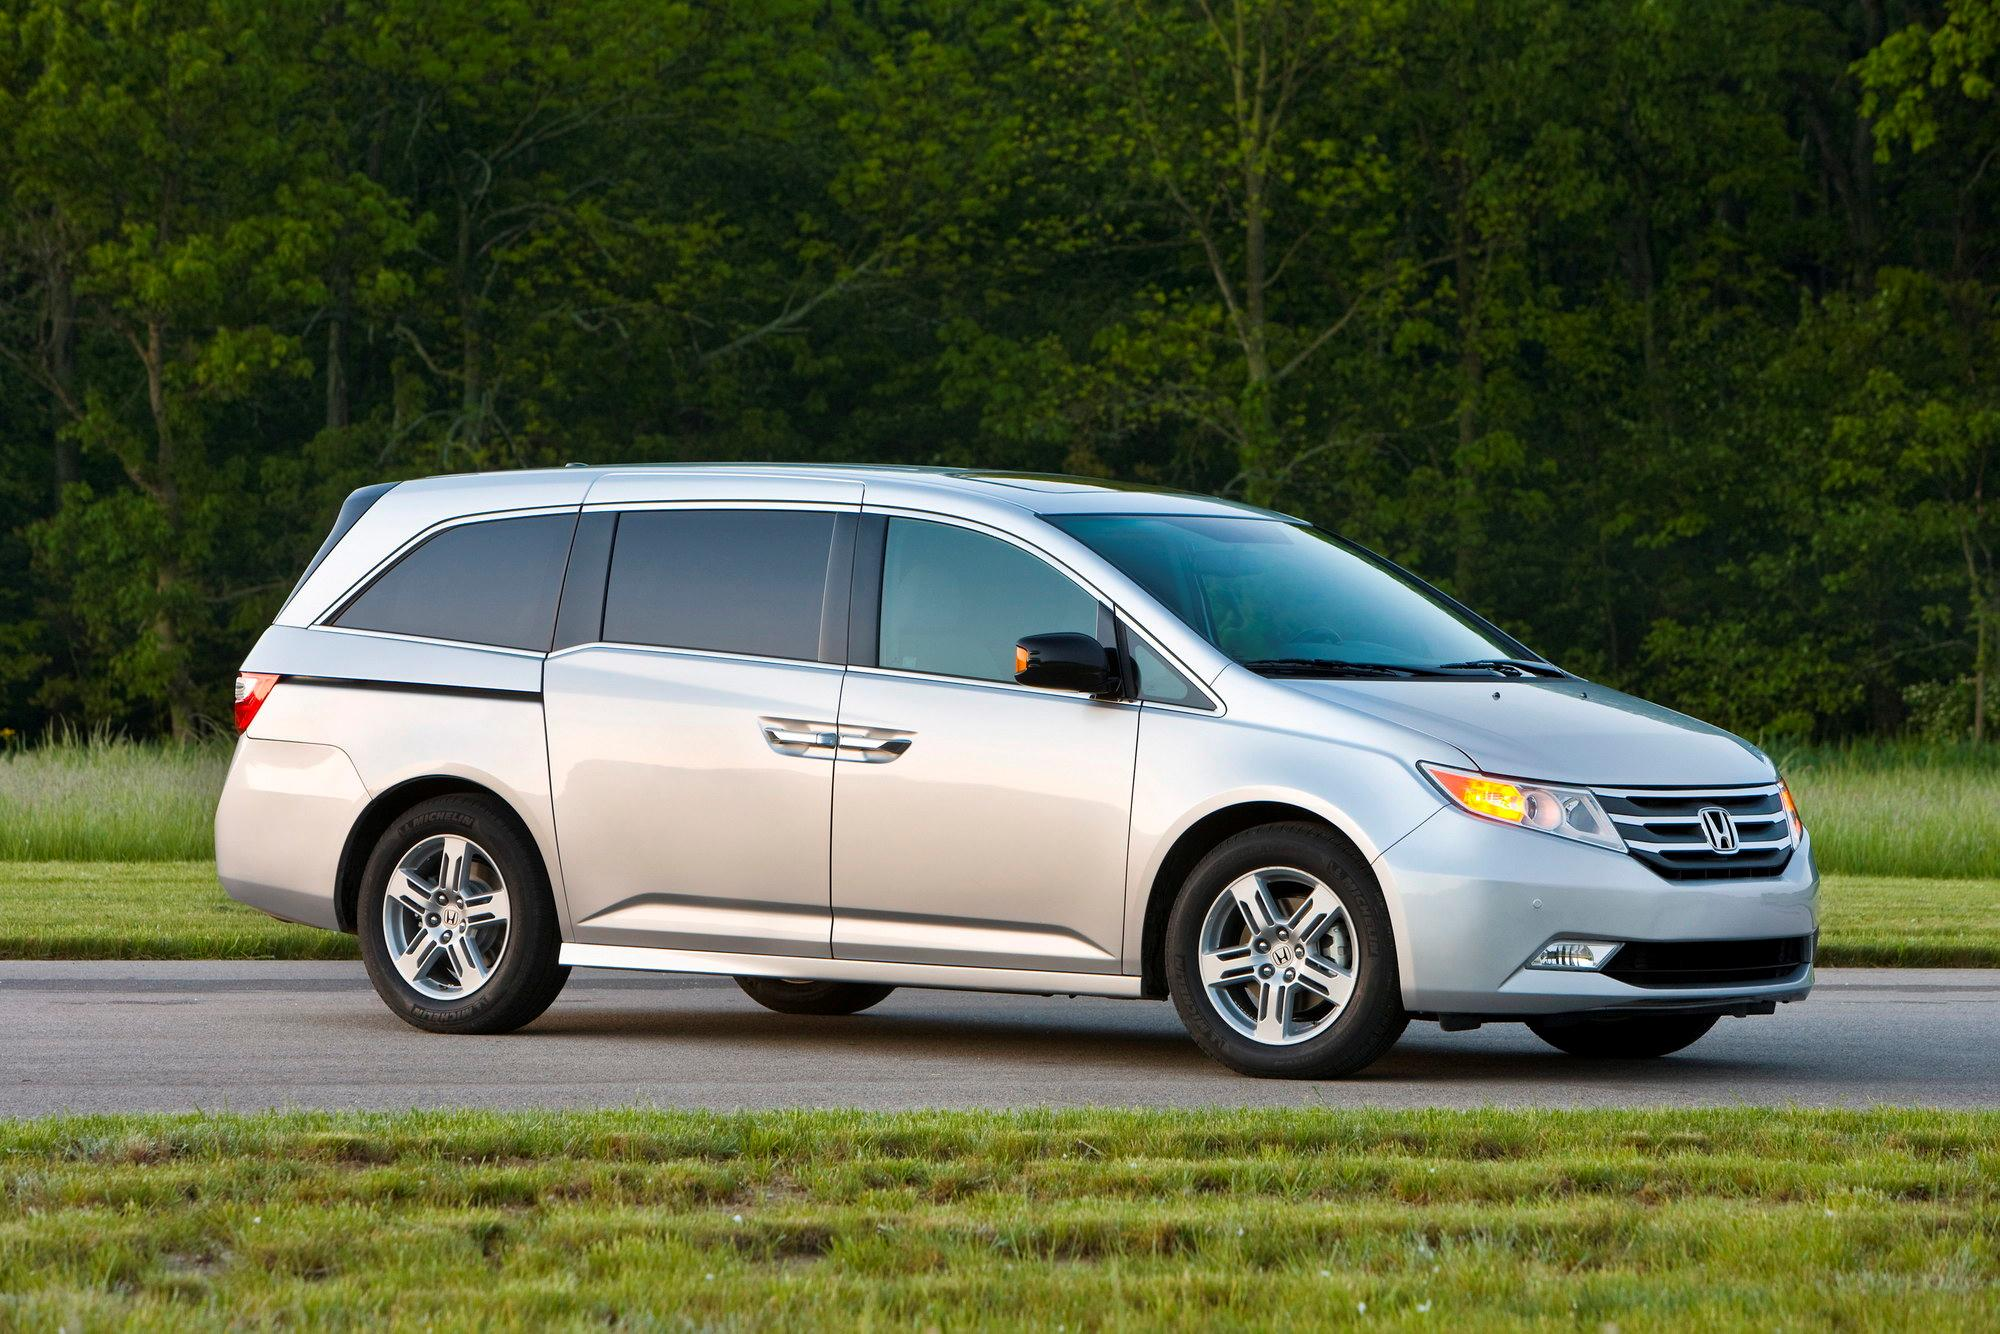 2011 honda odyssey touring elite review top speed. Black Bedroom Furniture Sets. Home Design Ideas